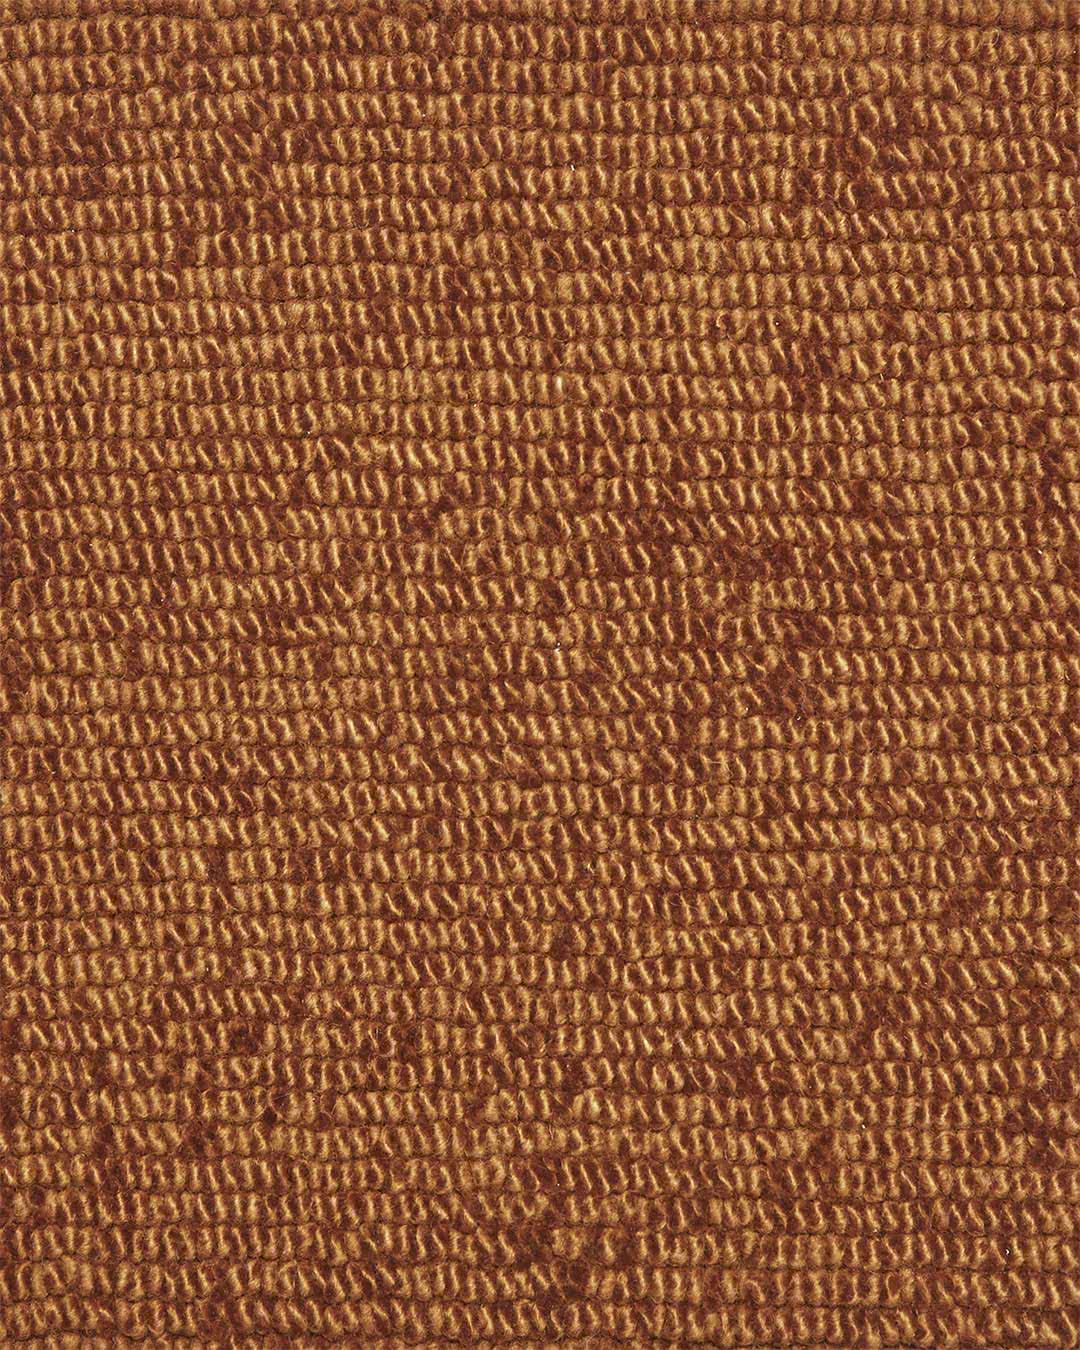 Close up view of textured Napoleon Tip Shear Loop rug in bronze brown colour